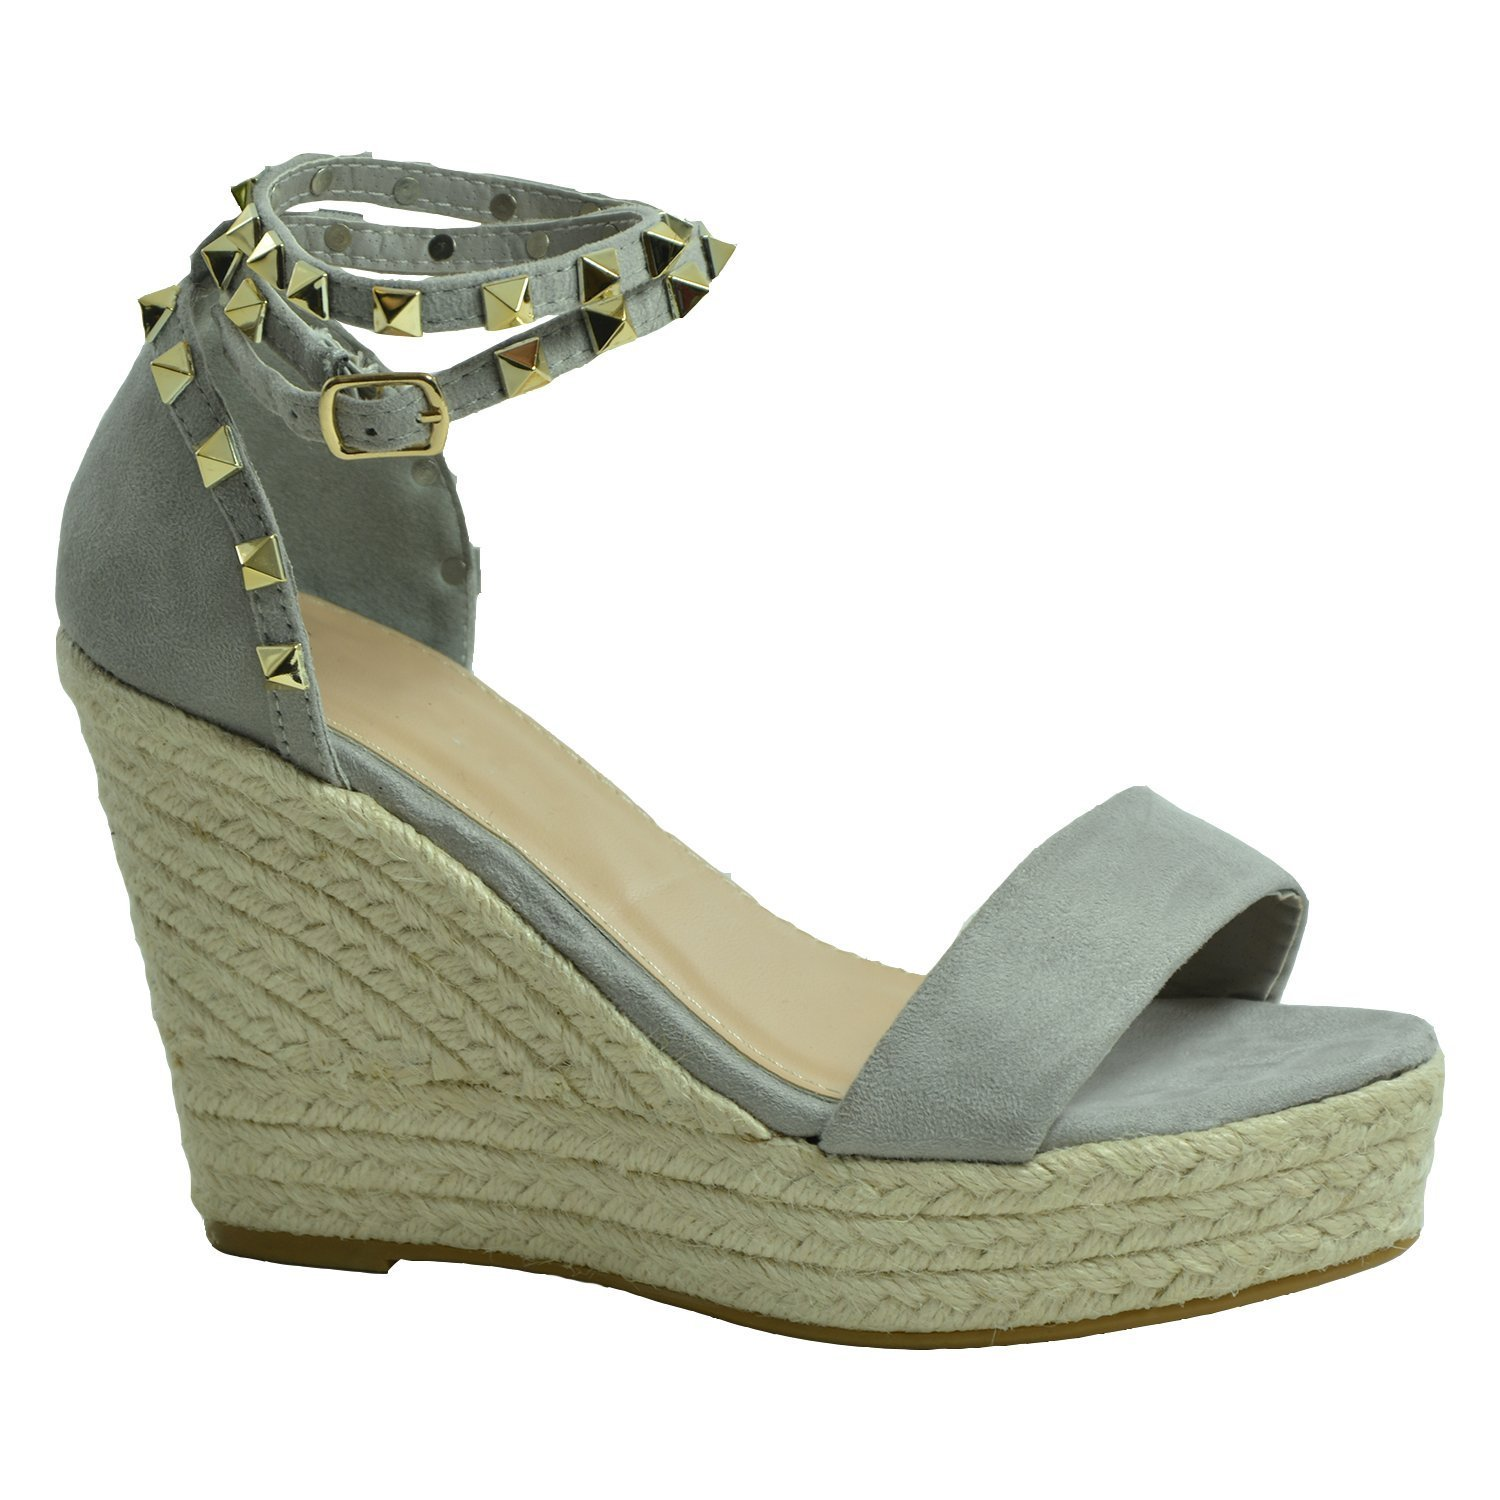 Womens Ankle Strap Studded Wedge Shoes B073JV54TR 8 B(M) US|Grey